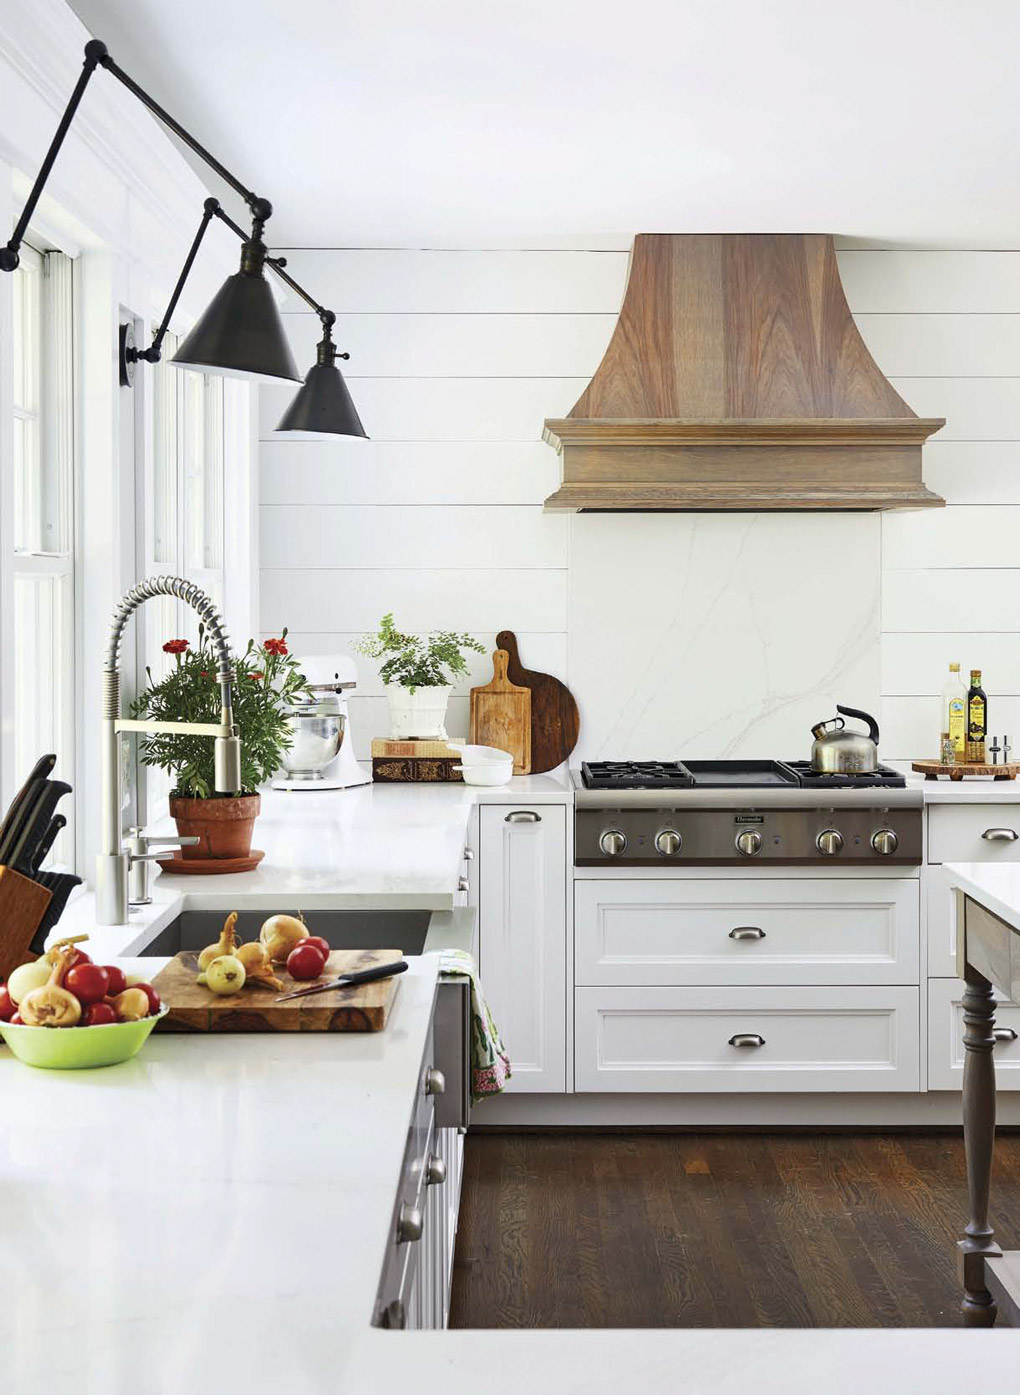 White kitchen with modern farmhouse lights above the sink and a custom wooden range hood.